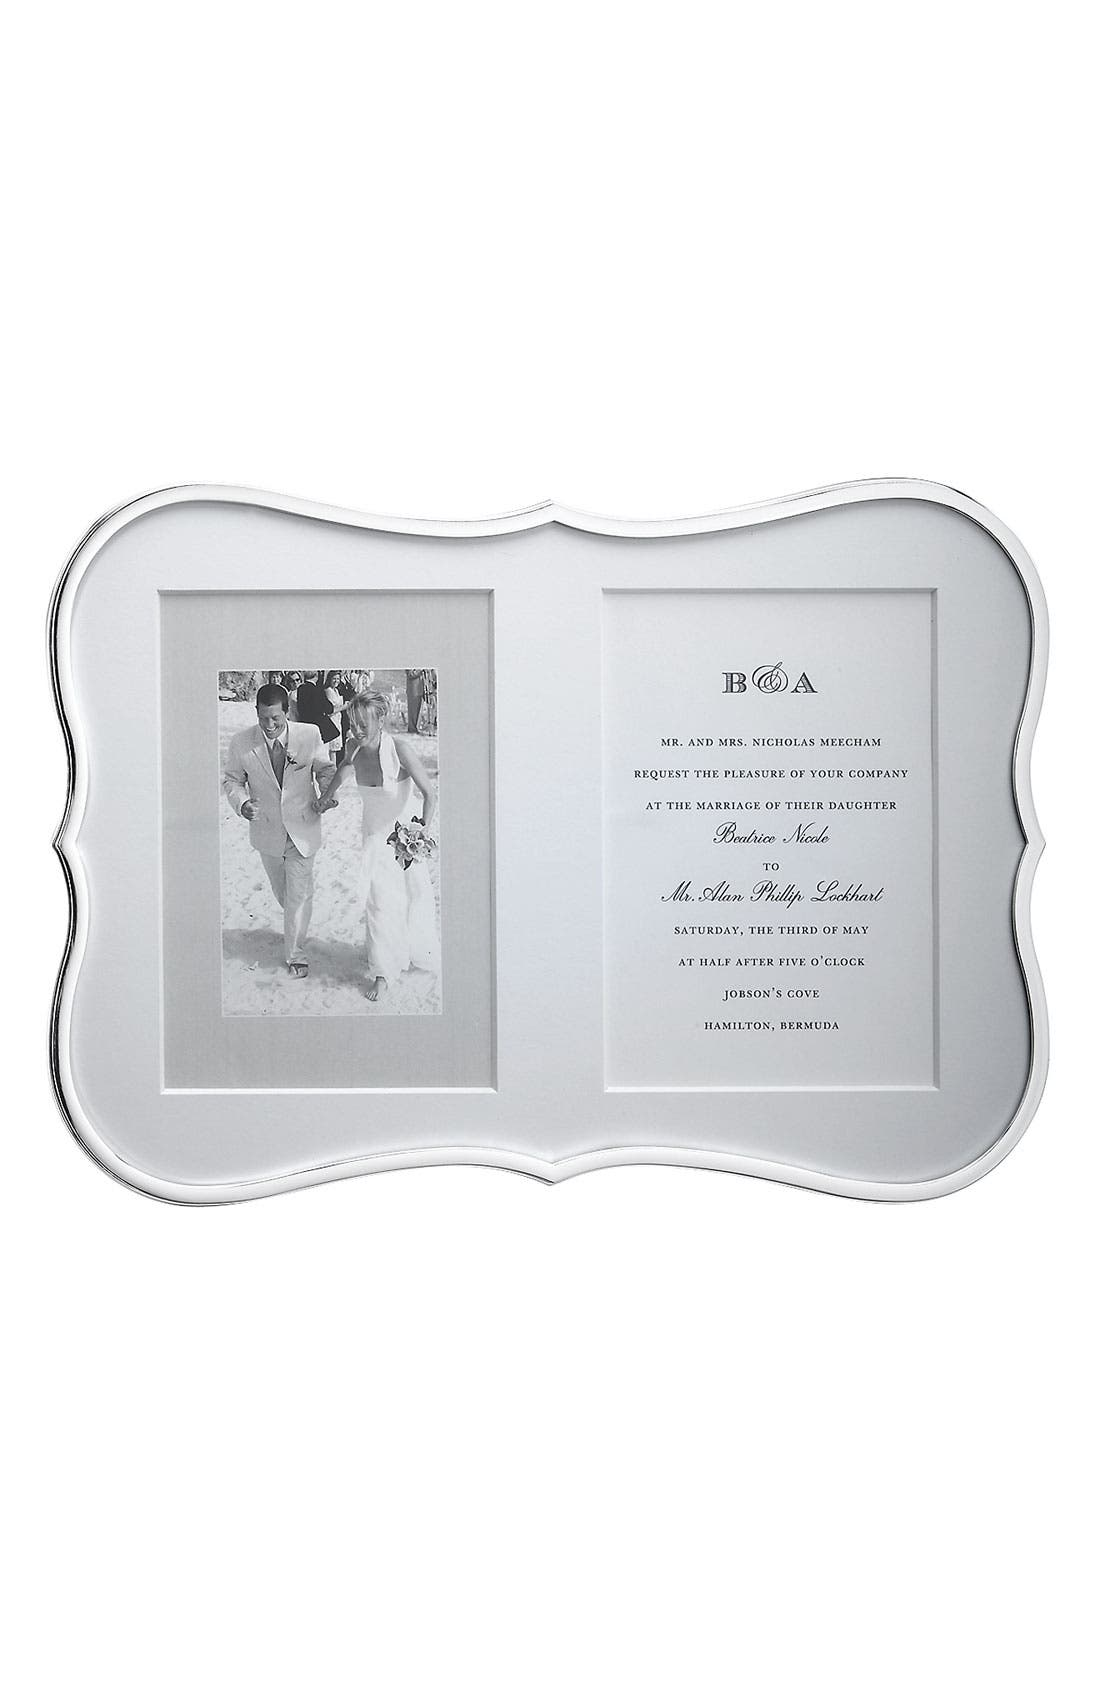 Main Image - kate spade new york 'crown point' double invitation frame